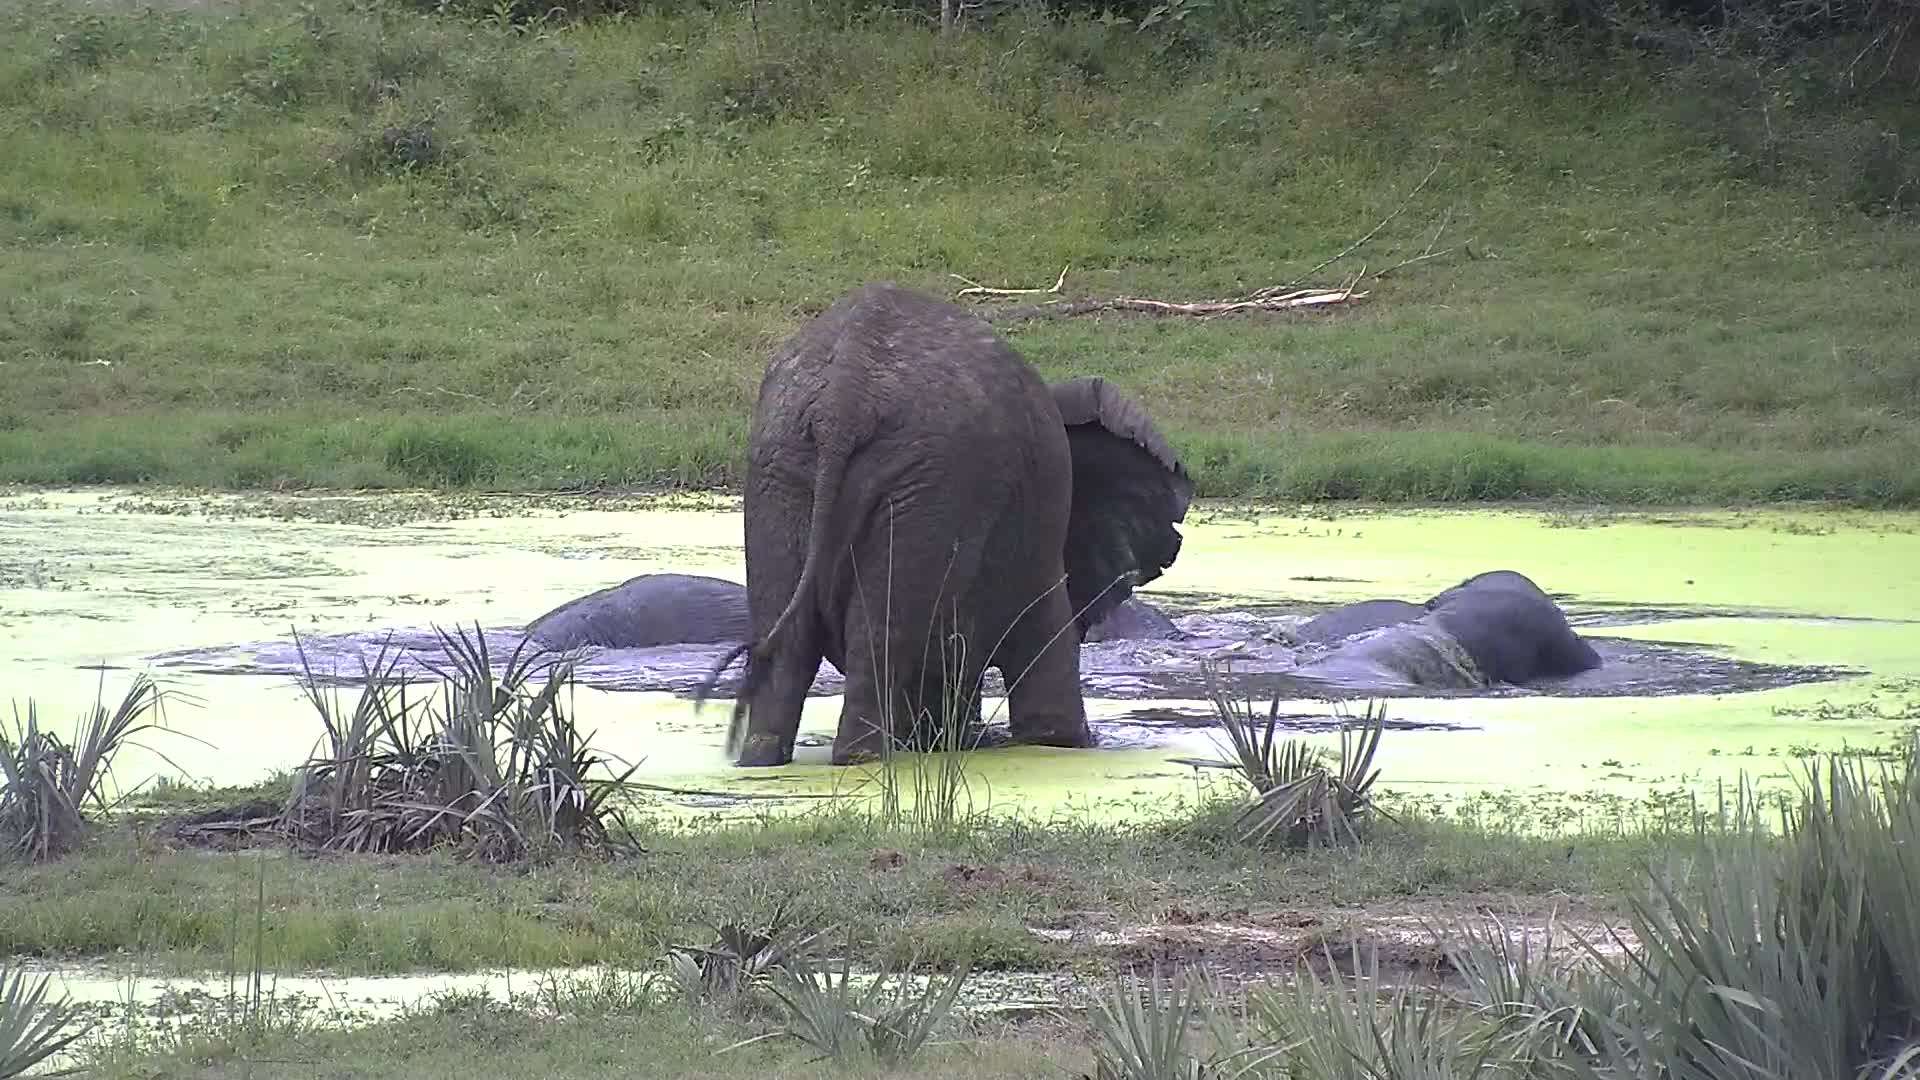 VIDEO: Elephants together playing.